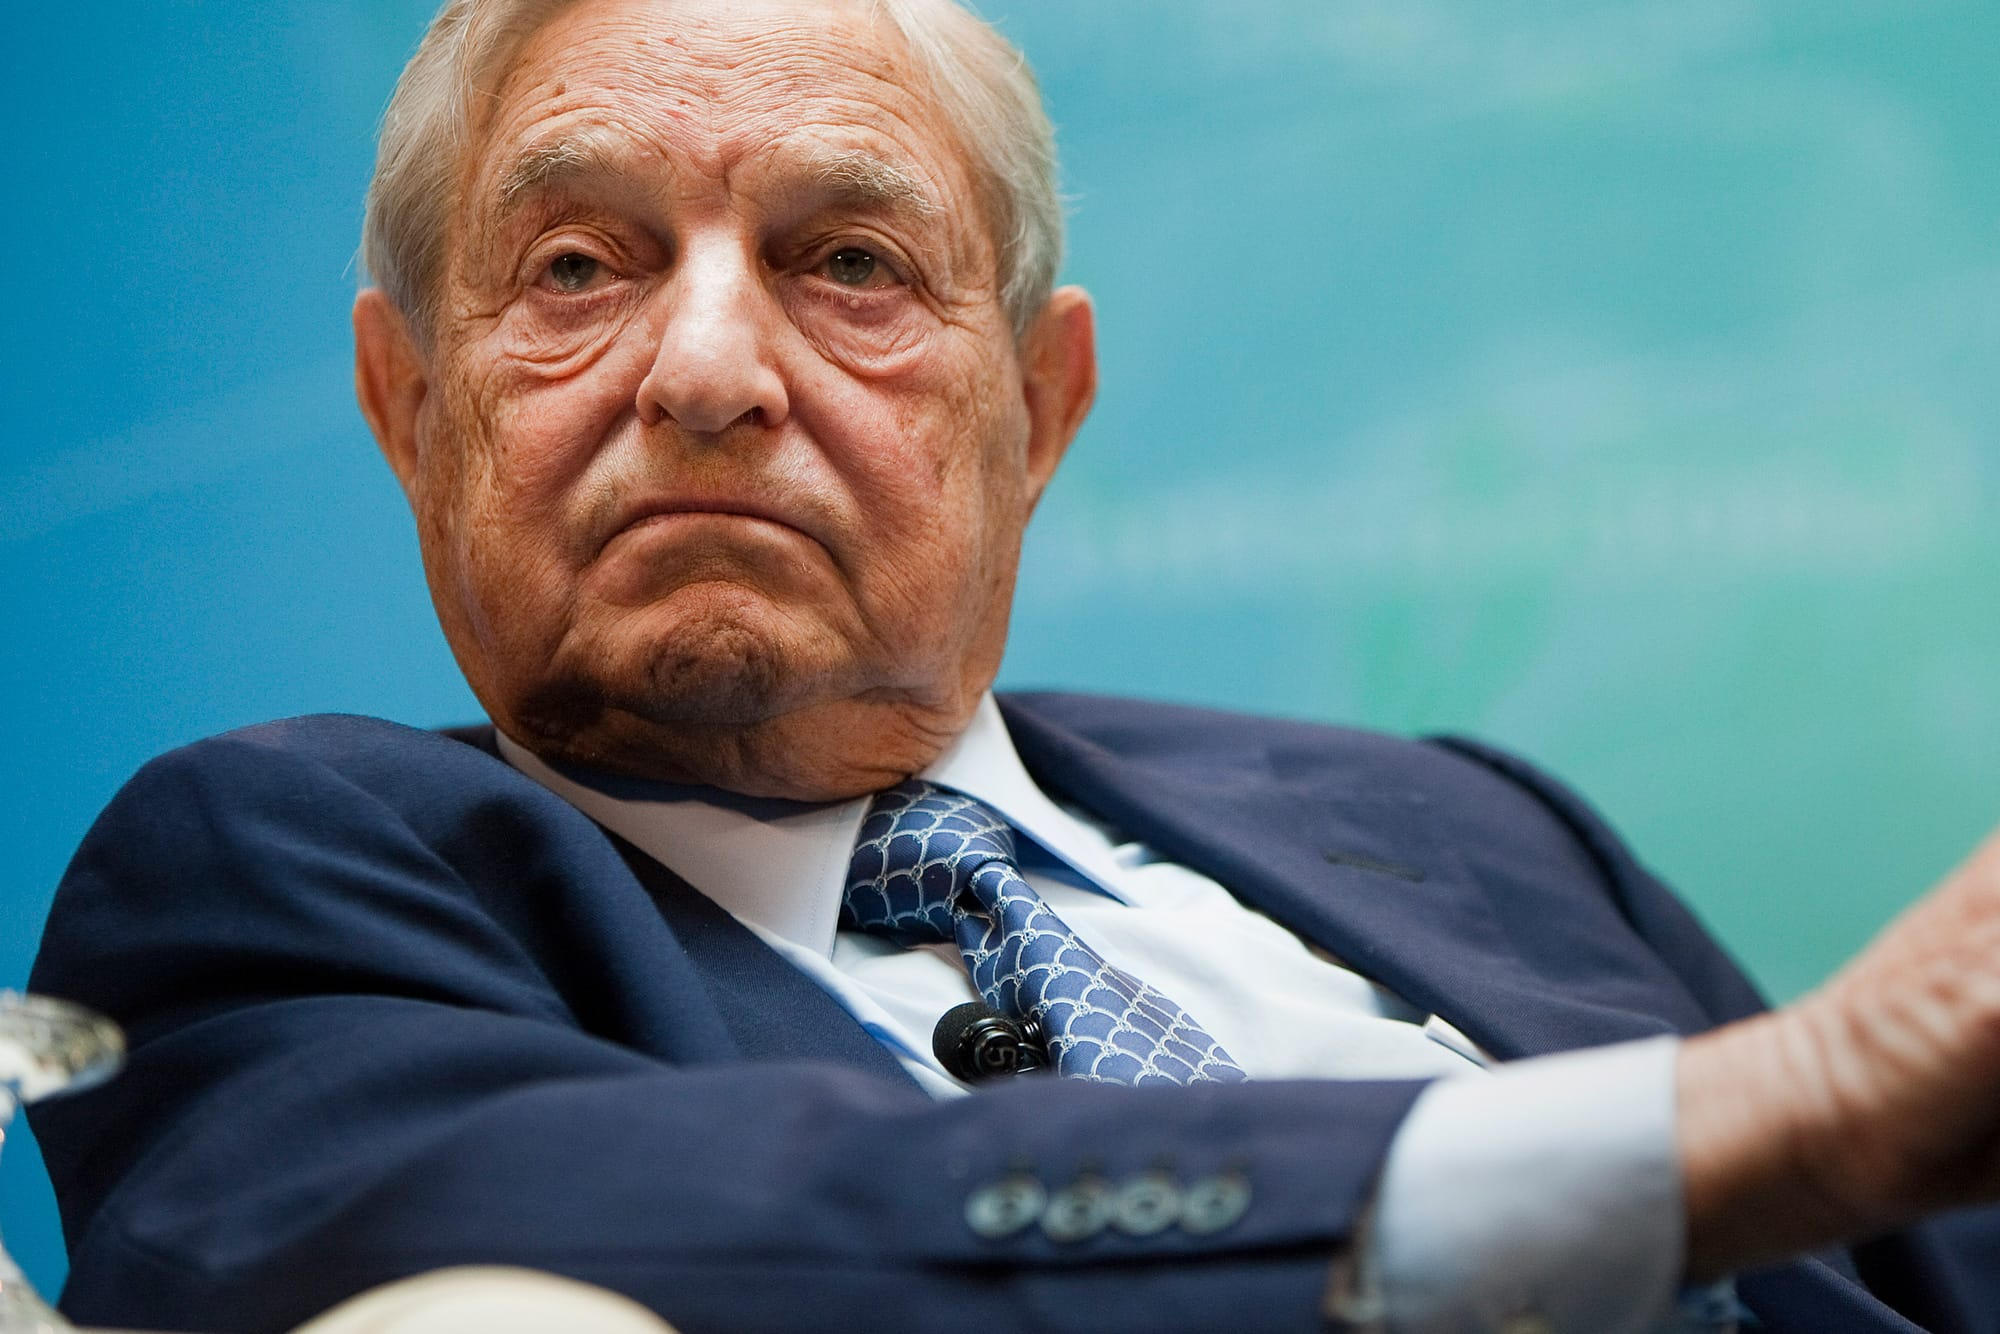 George Soros offers rare praise for Trump and how he's handled Huawei in the trade war